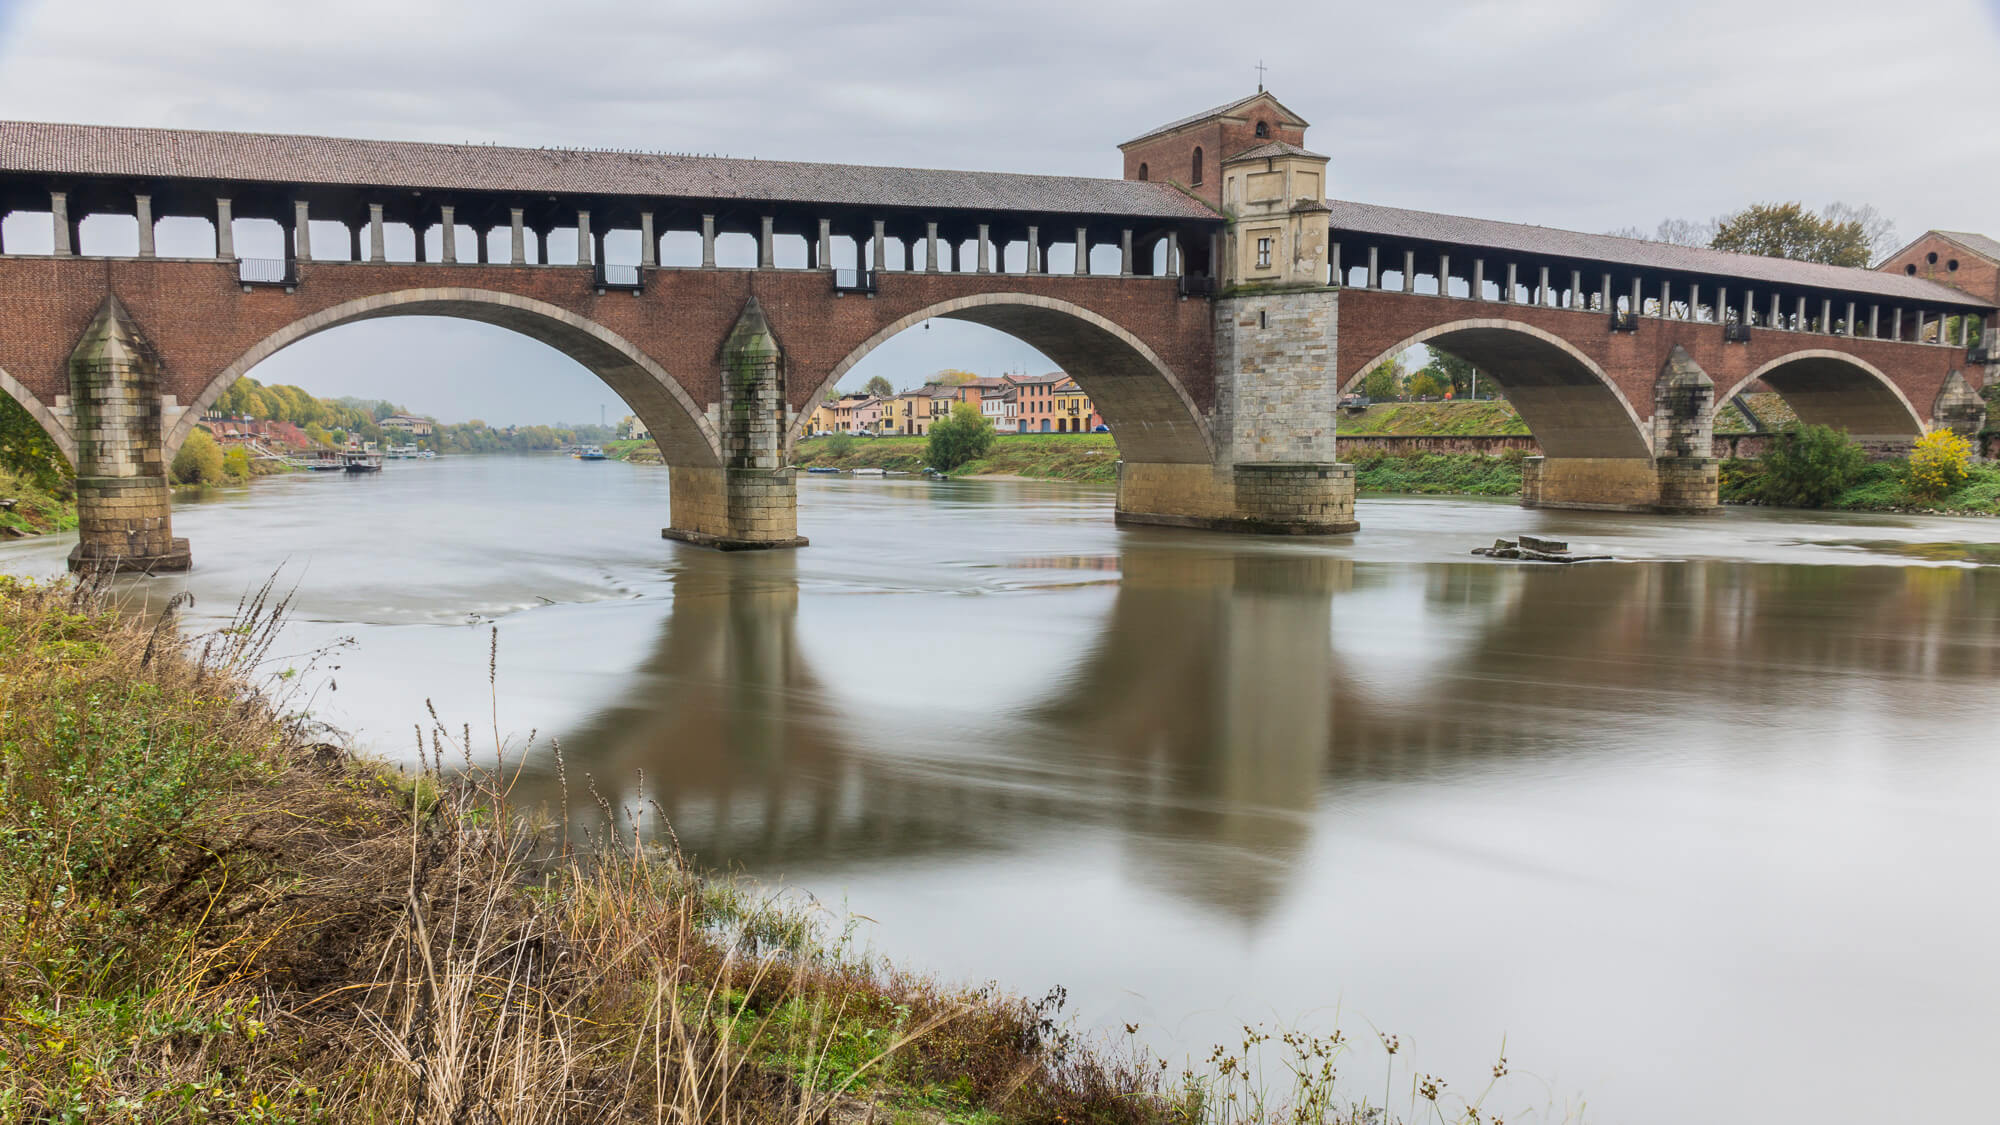 Pavia, a beautiful day trip away from Milan